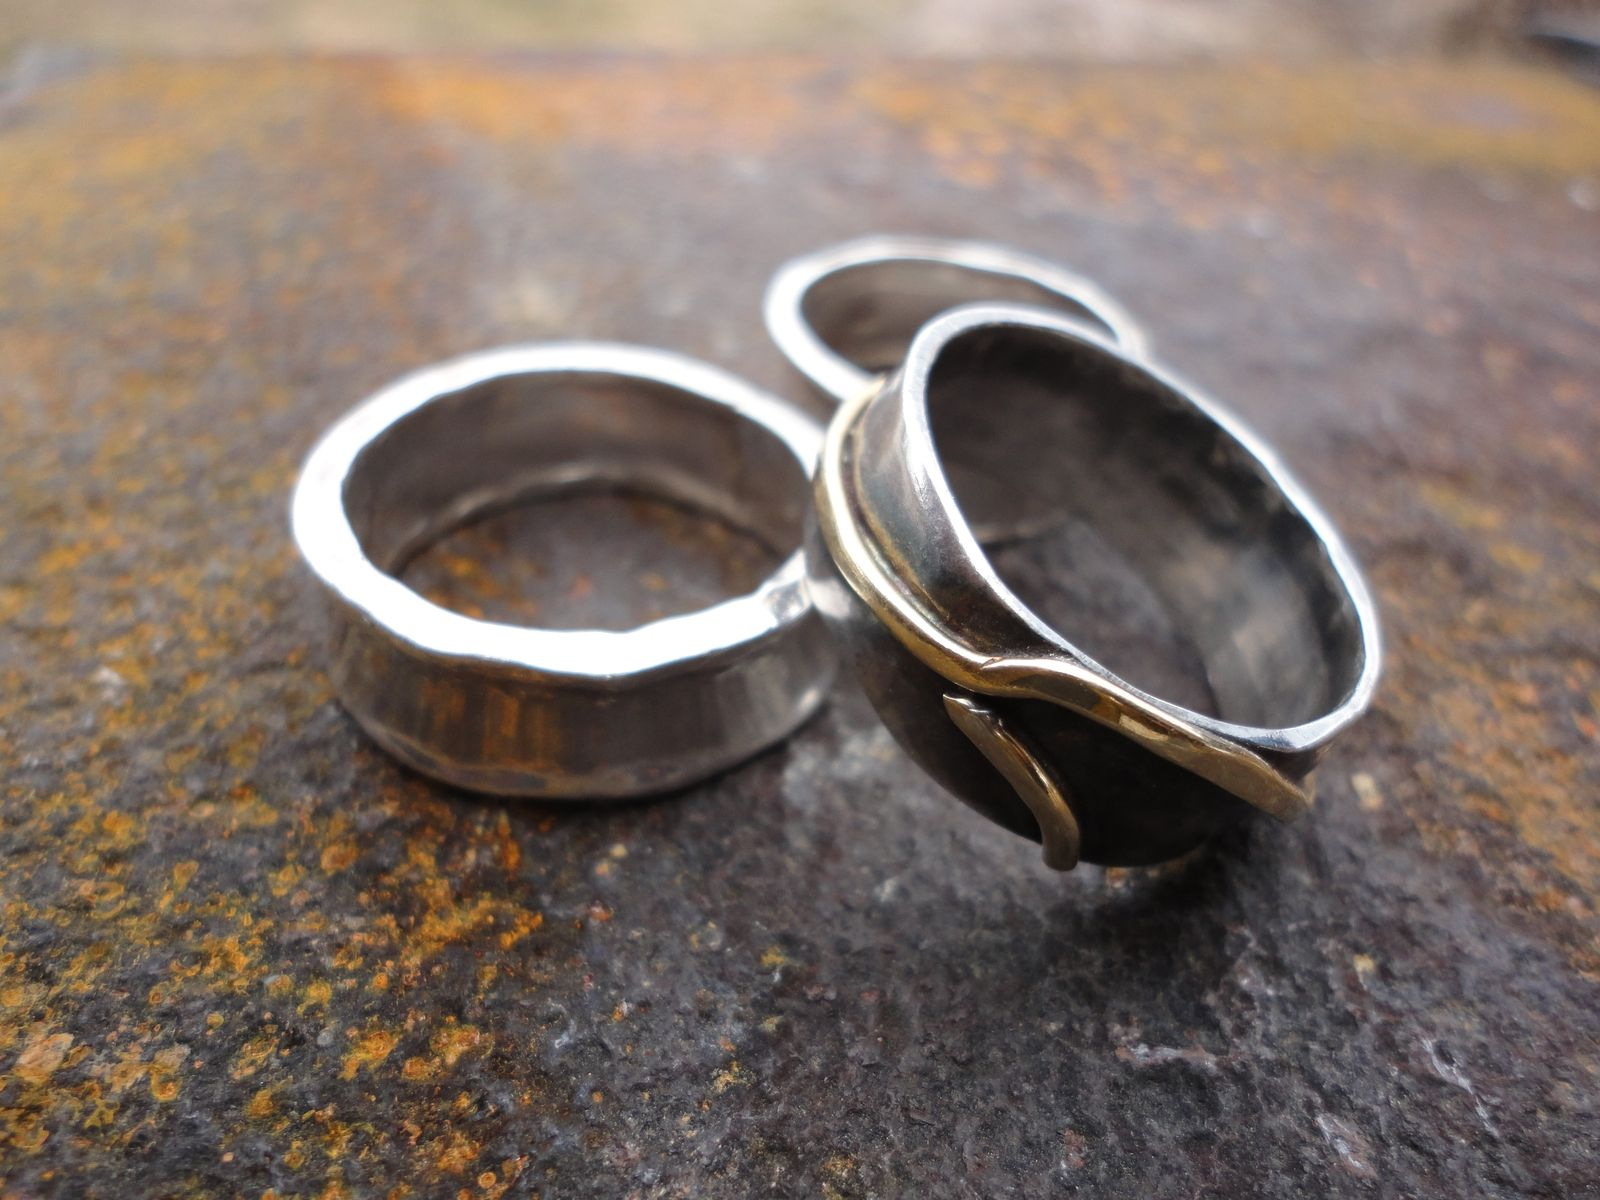 two hand oldfieldforge your fiance a forge rings by product make wedding oldfield forged ring for at original